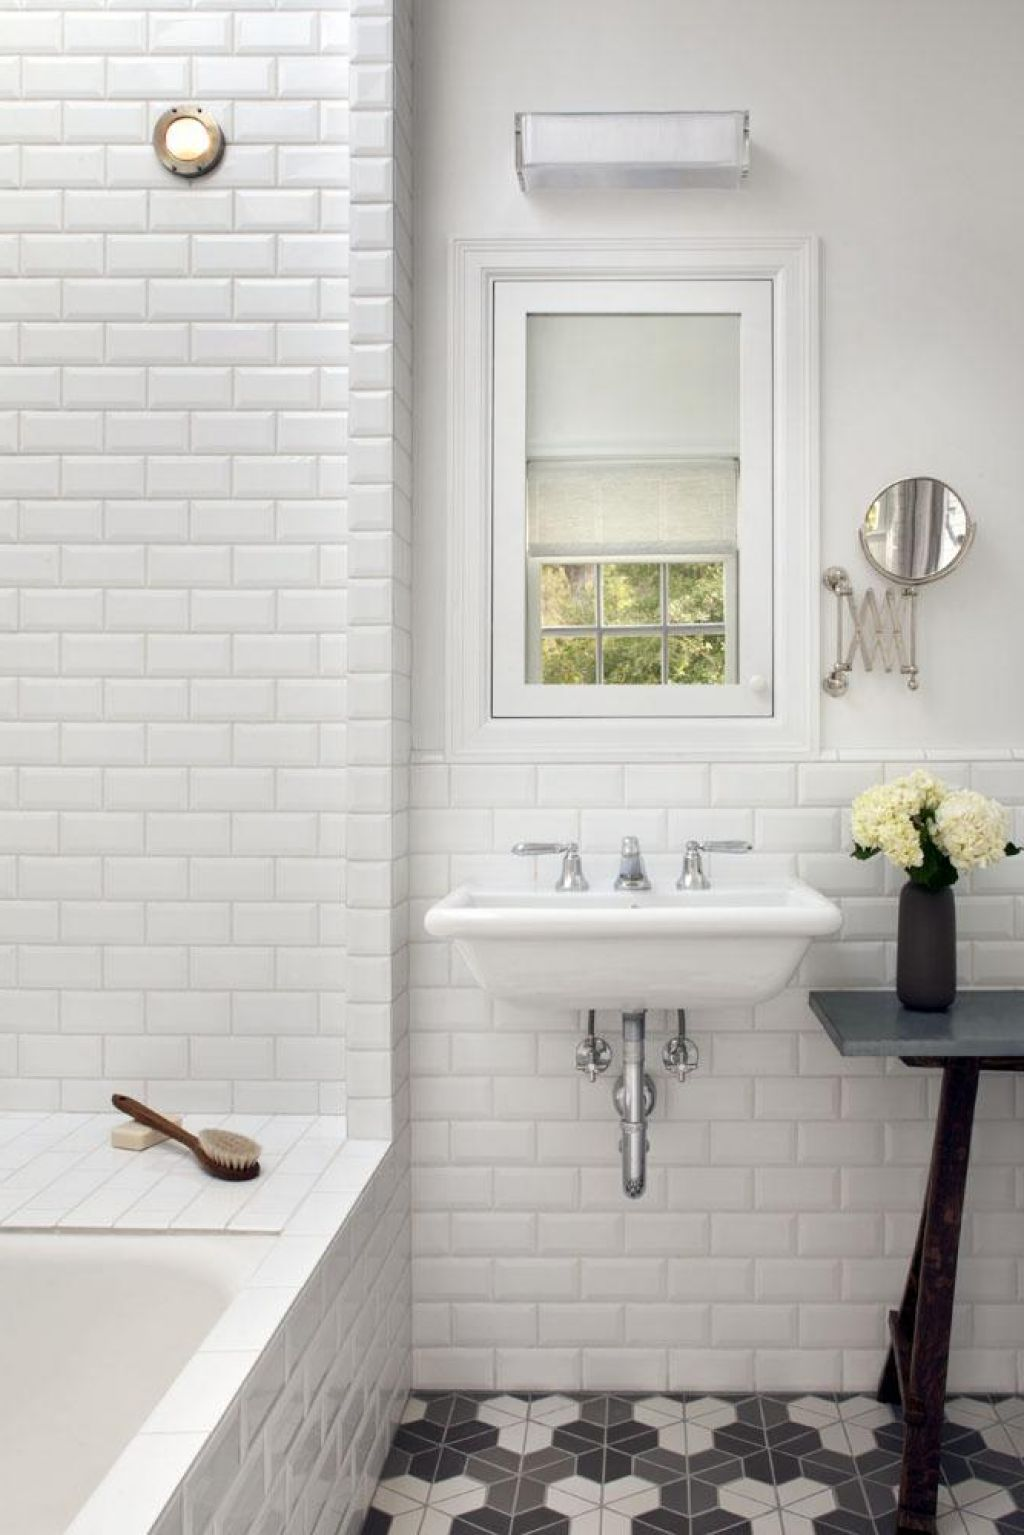 Subway tile bathroom ideas floor city wide kitchen and for Bathroom ideas using subway tile